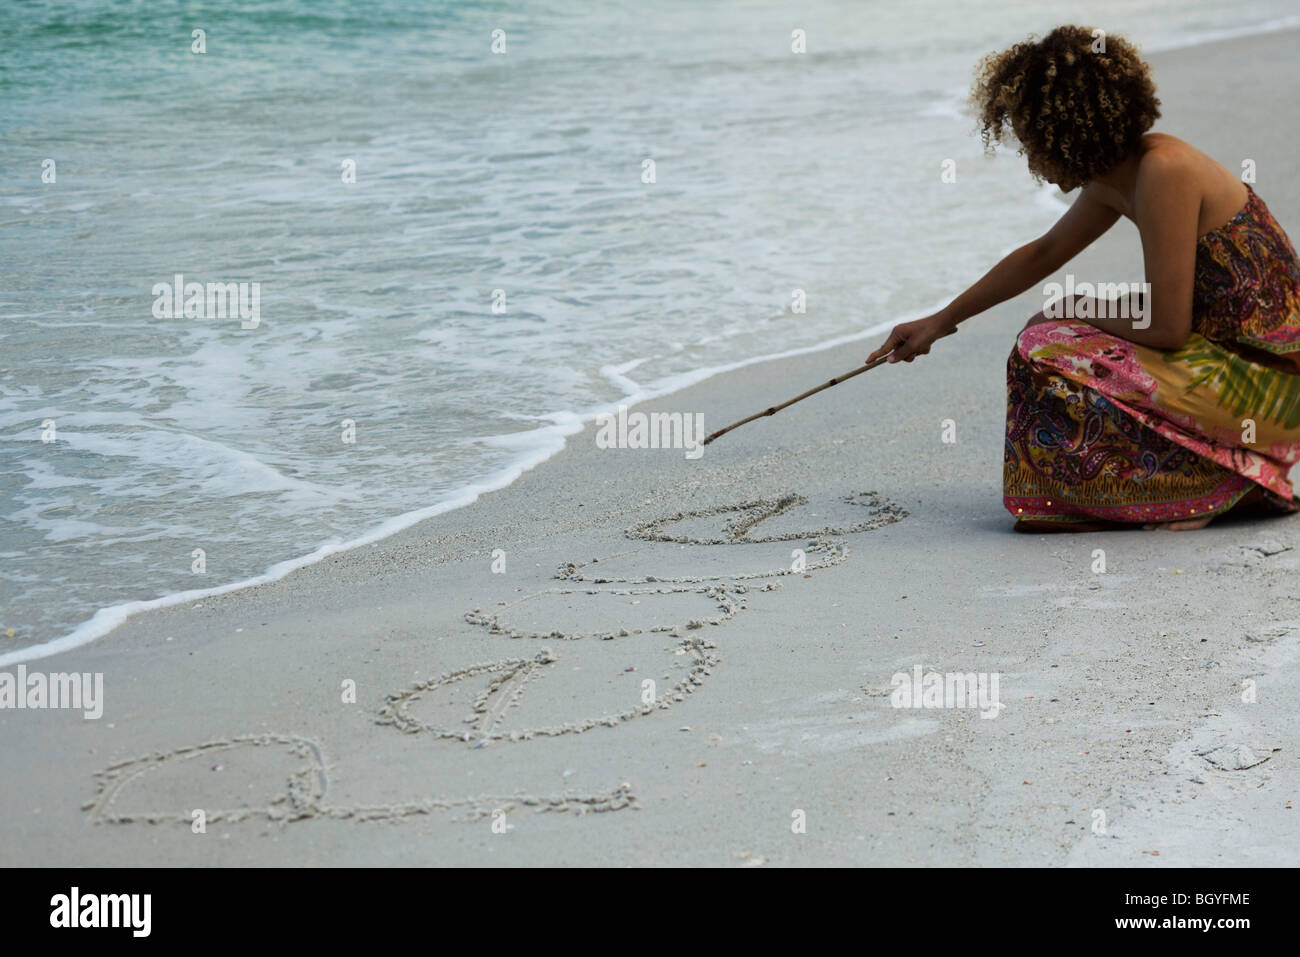 Woman crouching on beach, writing word 'peace' in sand with stick - Stock Image